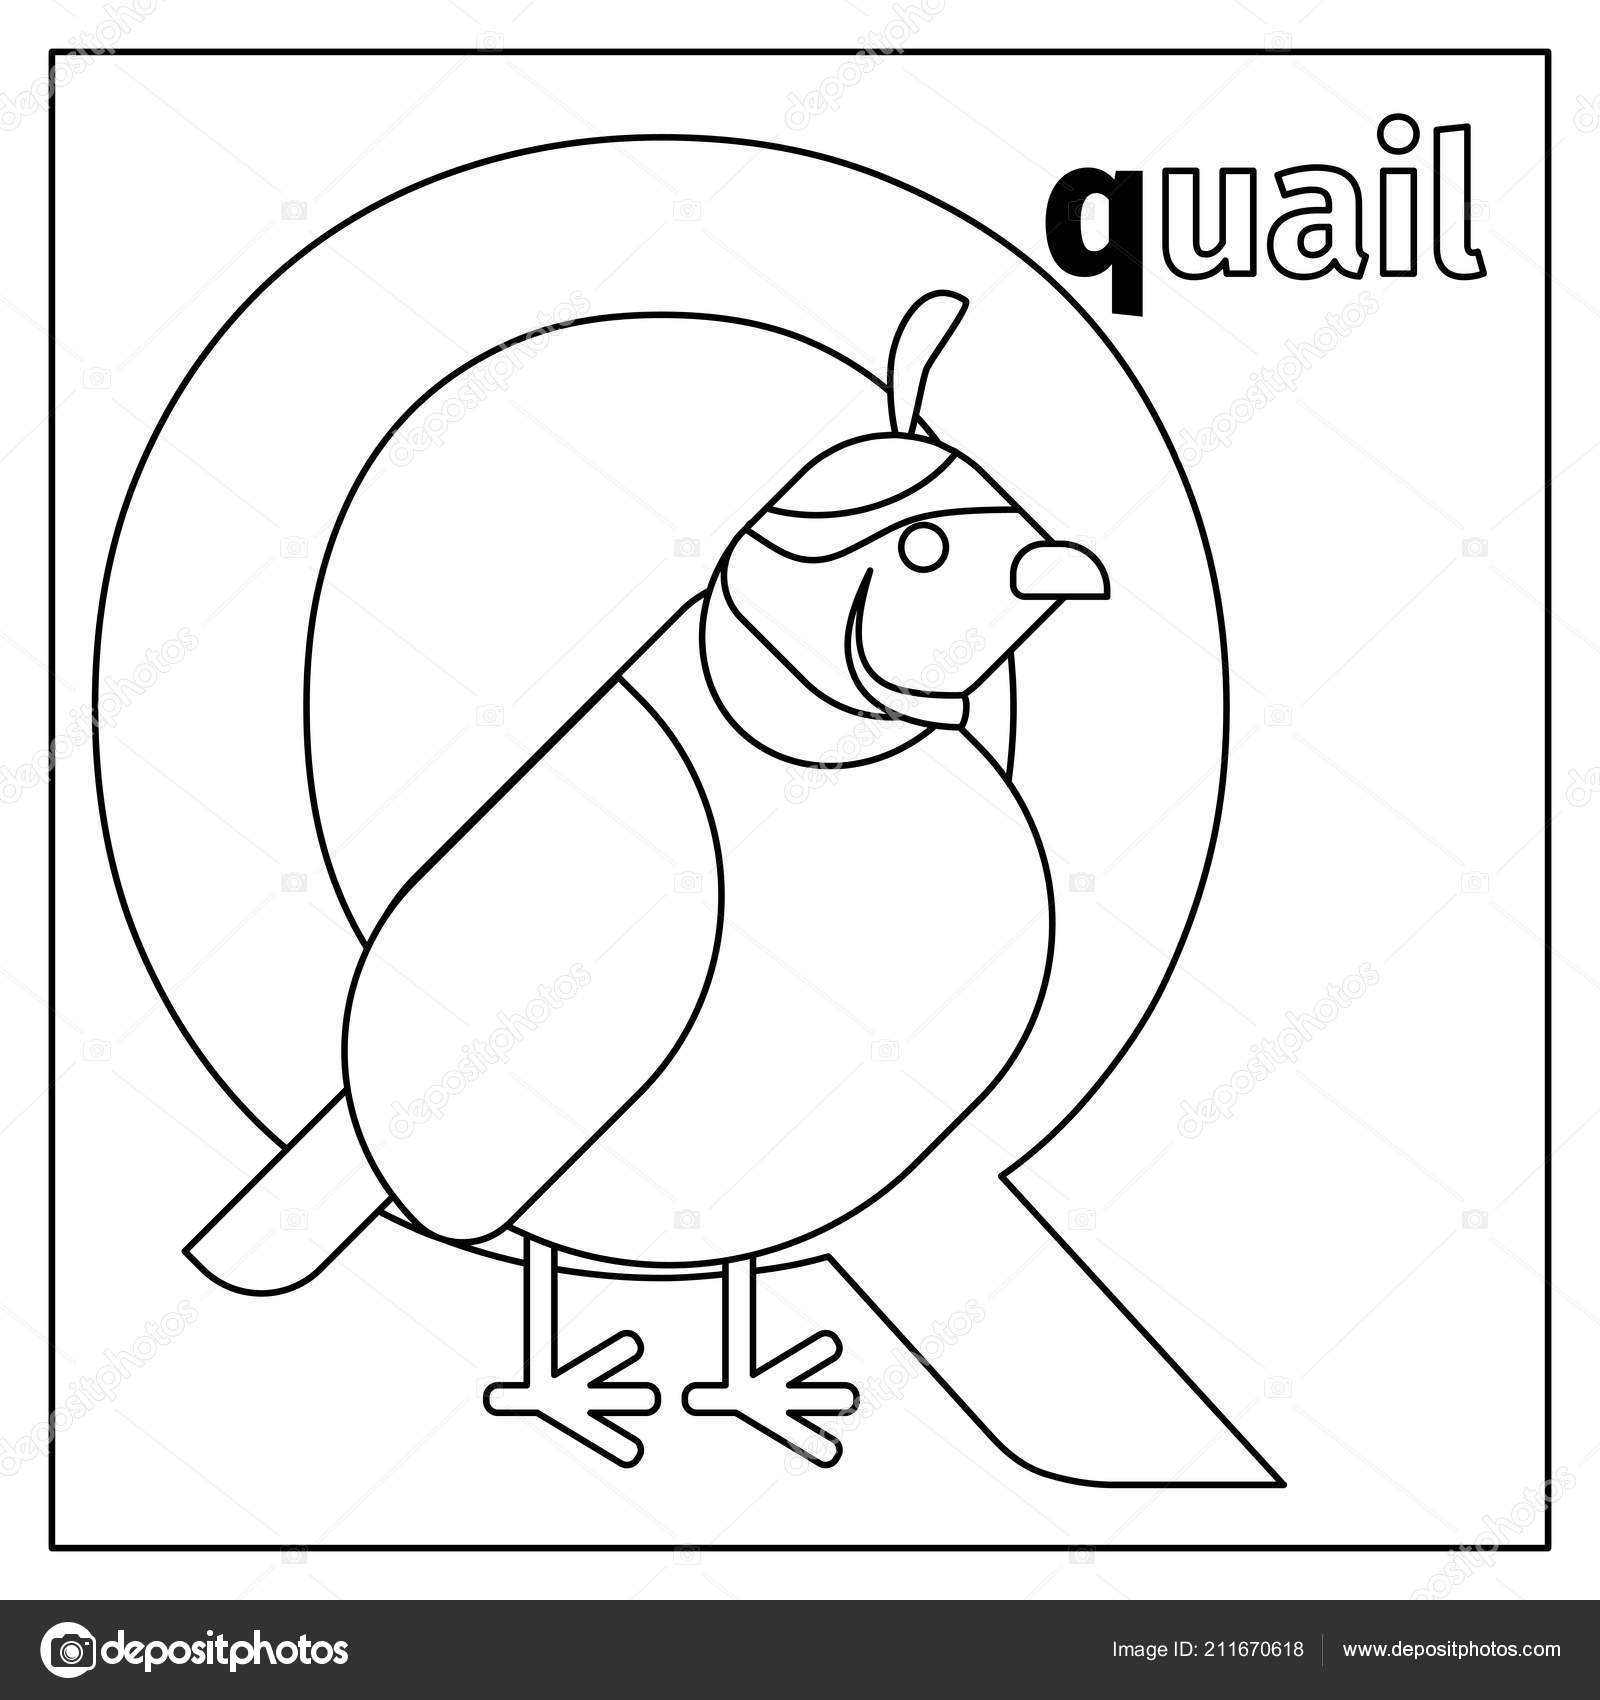 Quail Letter Q Coloring Page Stock Vector C Ssstocker 211670618